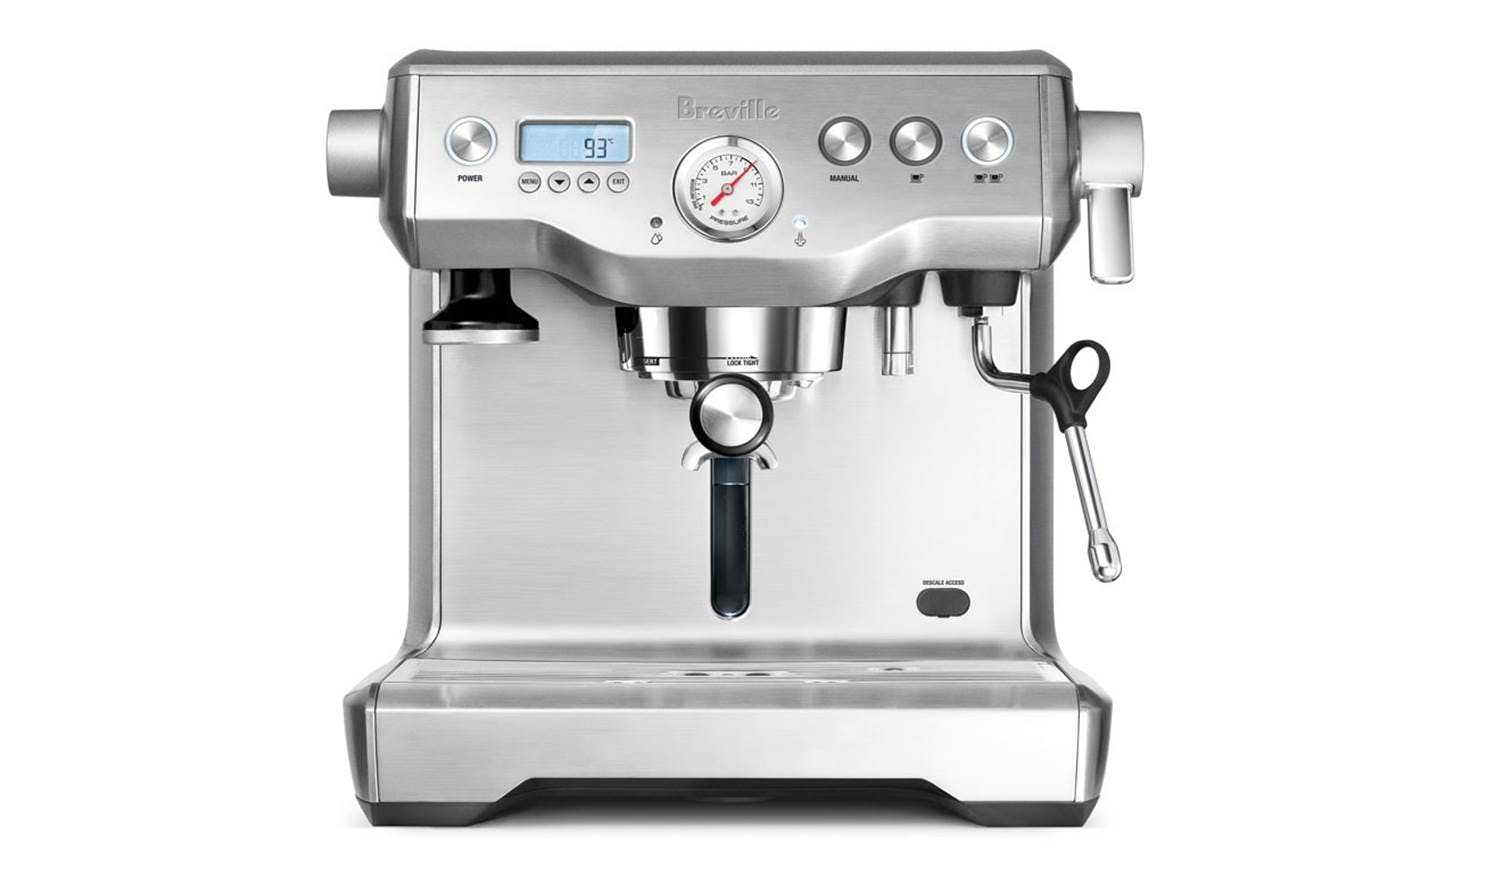 Breville BES-920 Dual Boiler Coffee Machine Harvey Norman Singapore